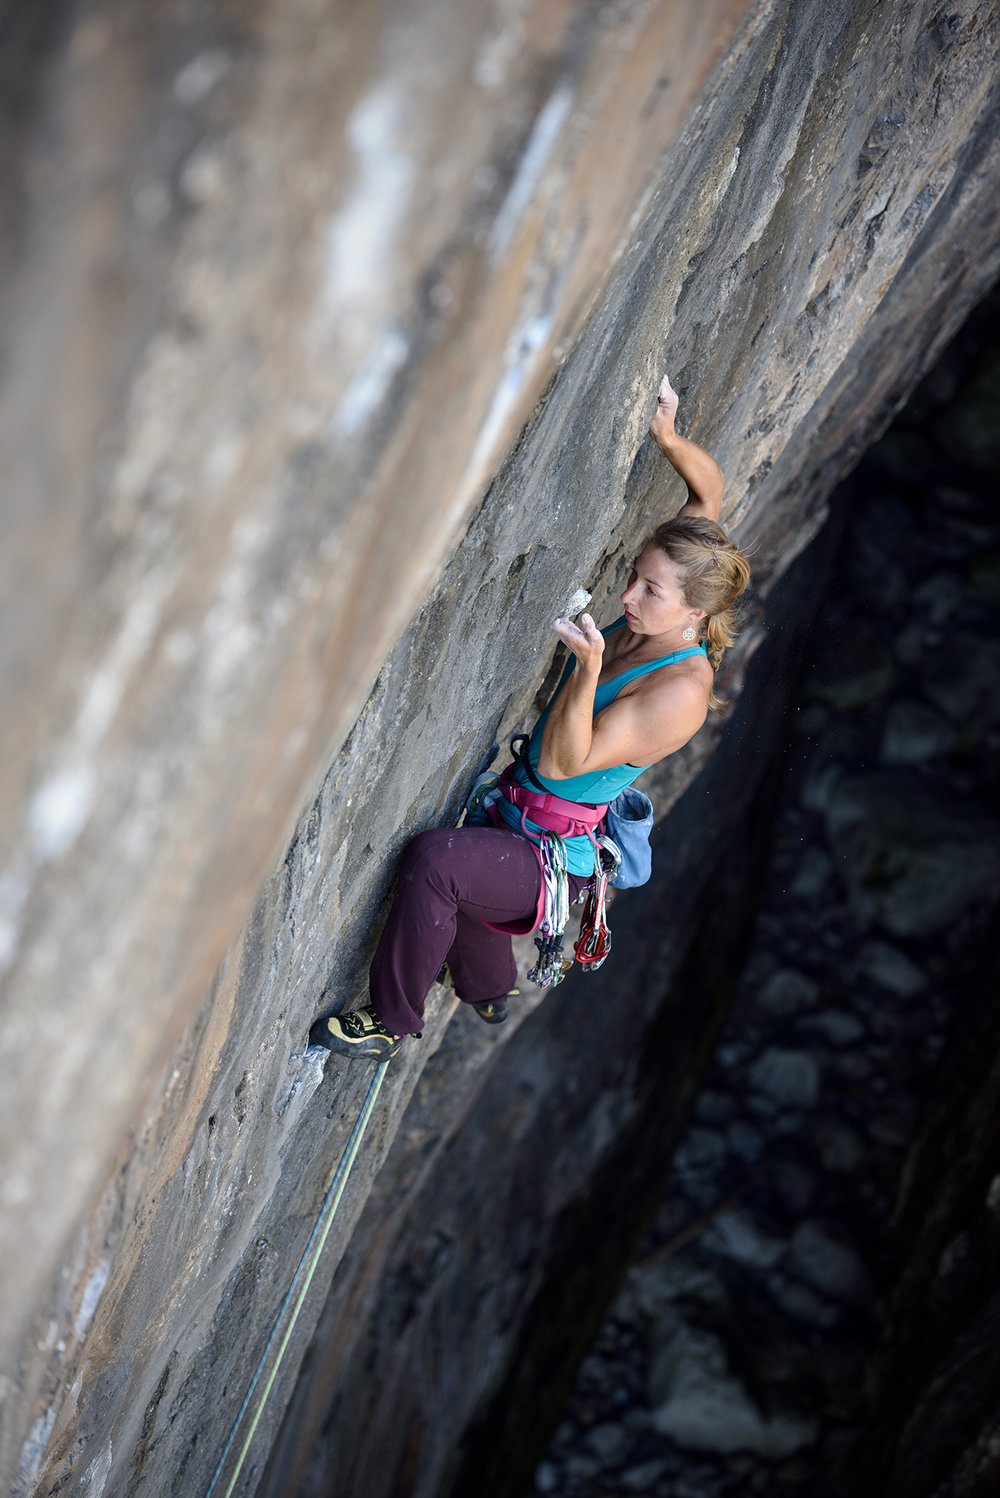 Madeleine Cope on sighting Ghost Train E6 6b, Stennis Ford, Pembroke, Wales